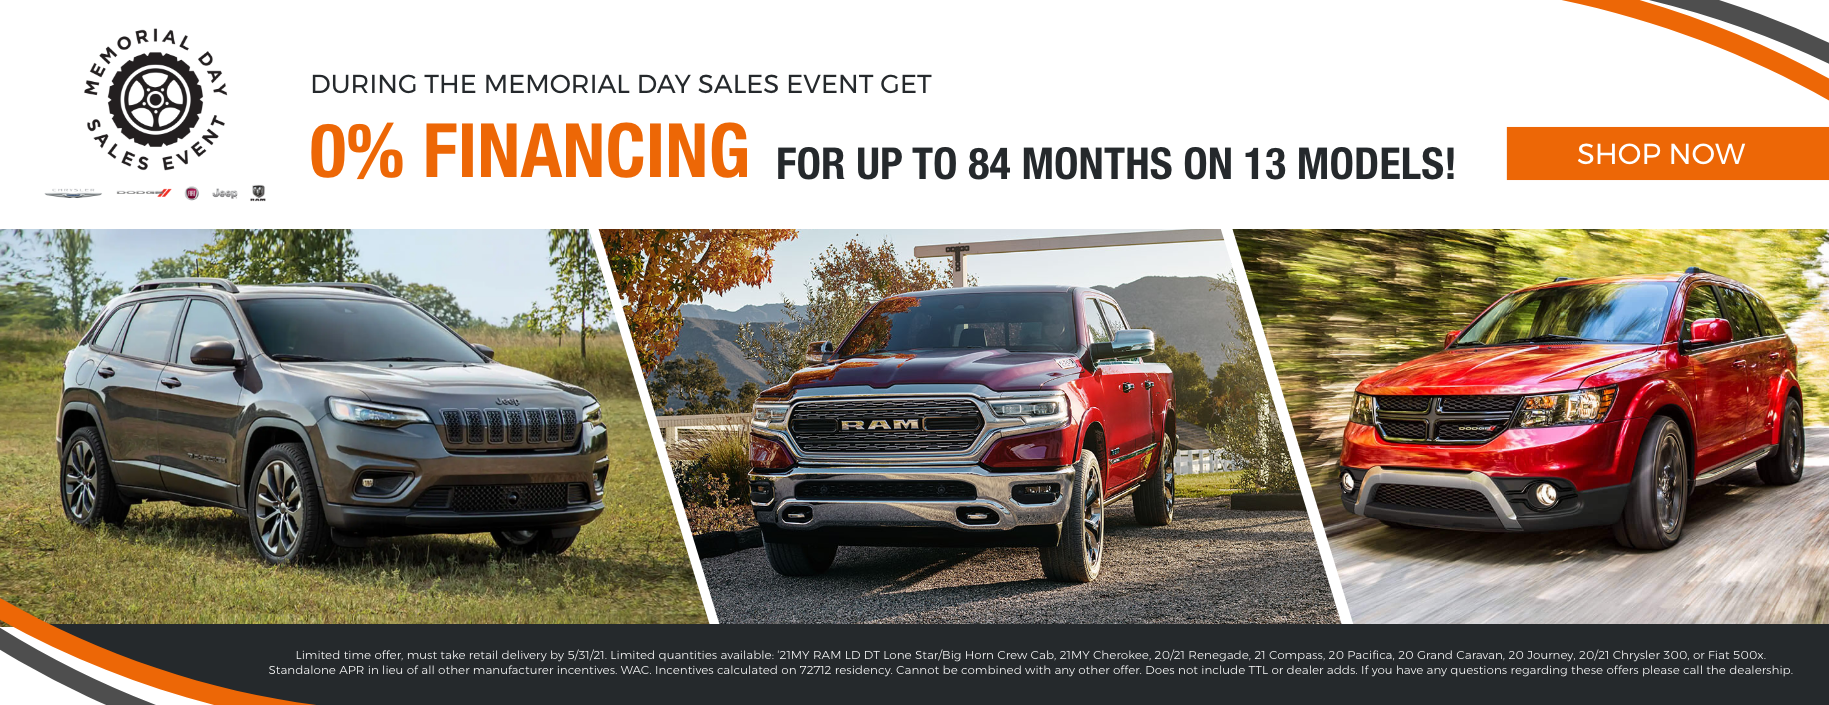 During the Memorial Day Sales Event get 0% financing up to 84 months on 13 models!